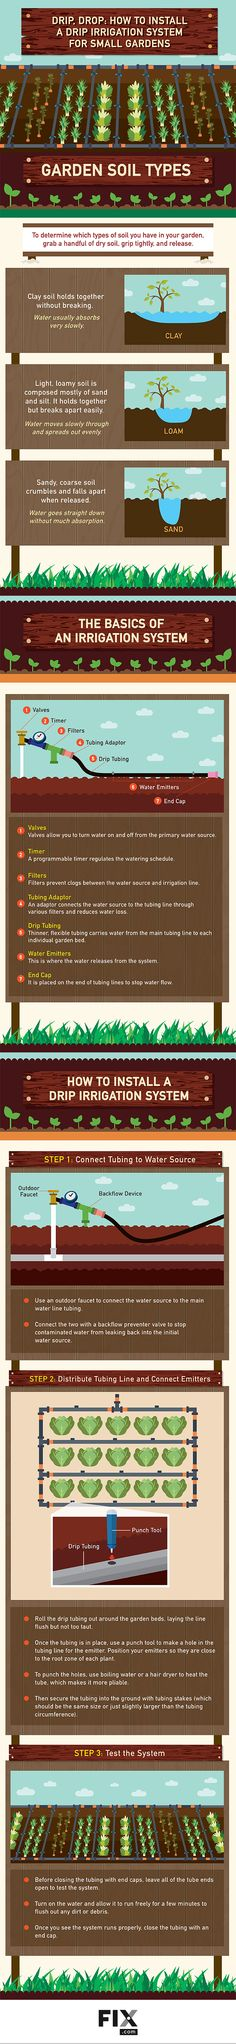 Learn the many benefits of having a drip irrigation system in your garden and learn how to get started on installing your very own!